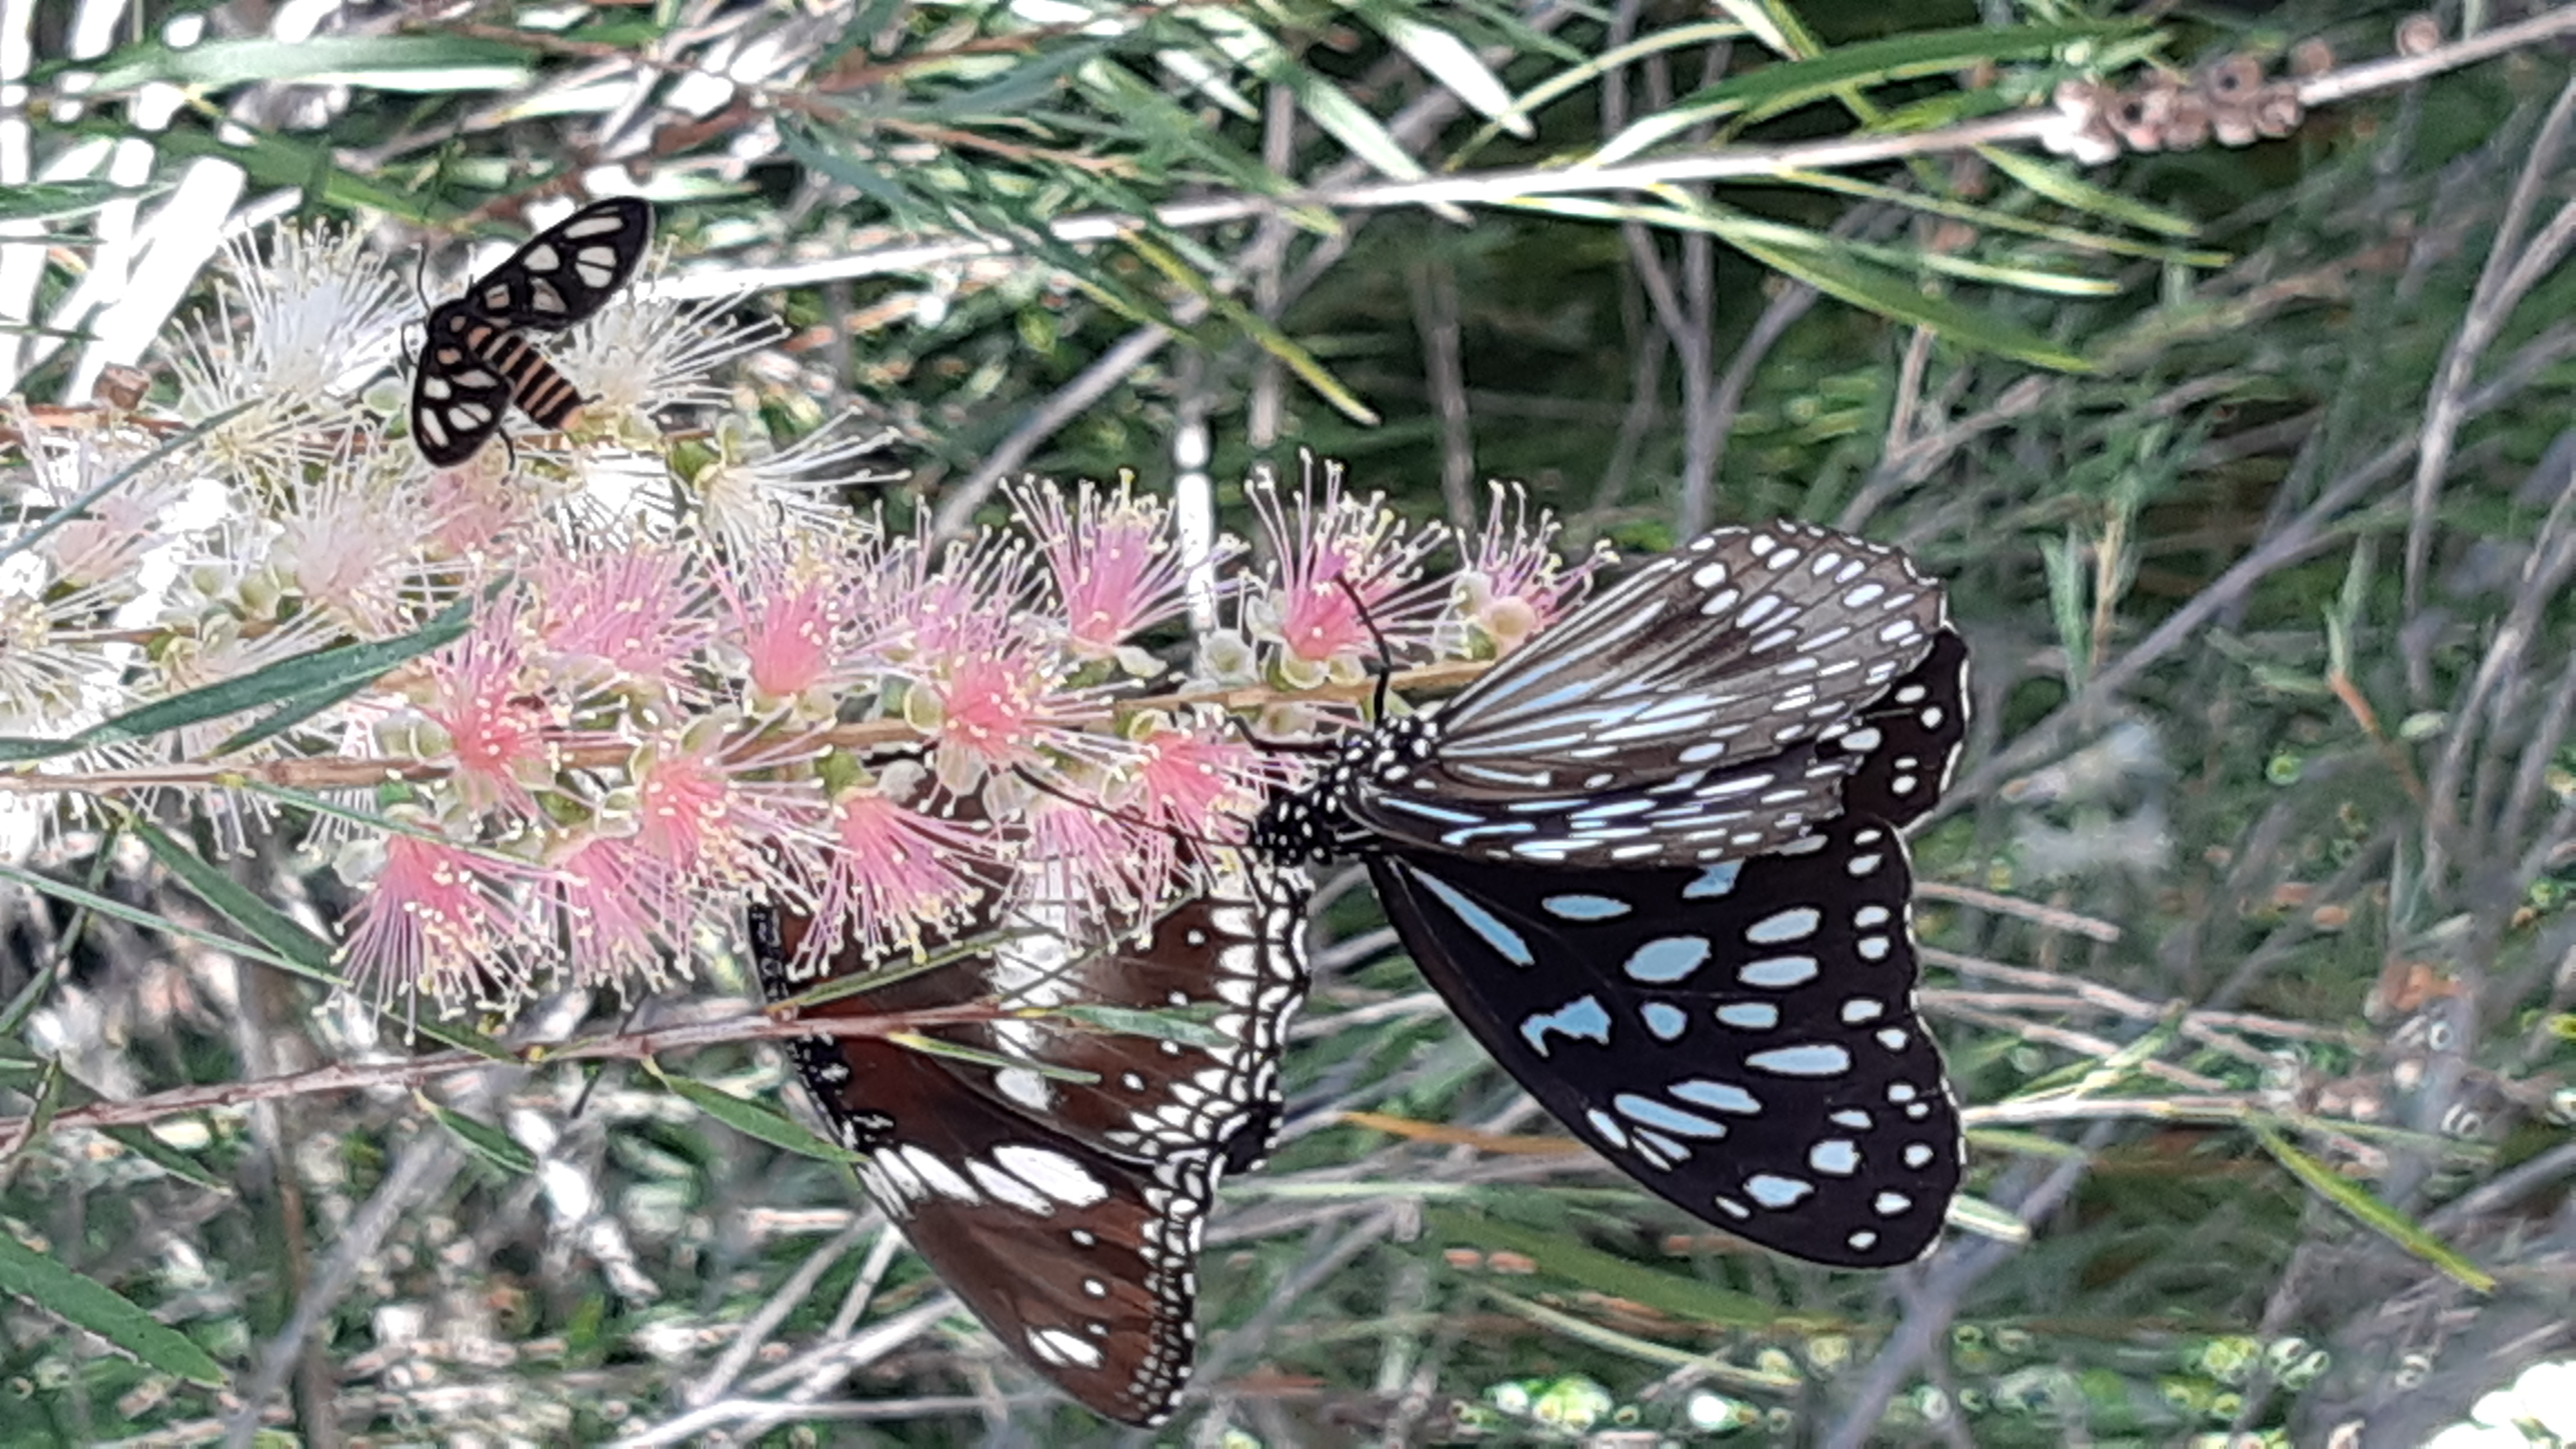 Spotted Crow, Tiger Blue & Wasp Butterfly feeding